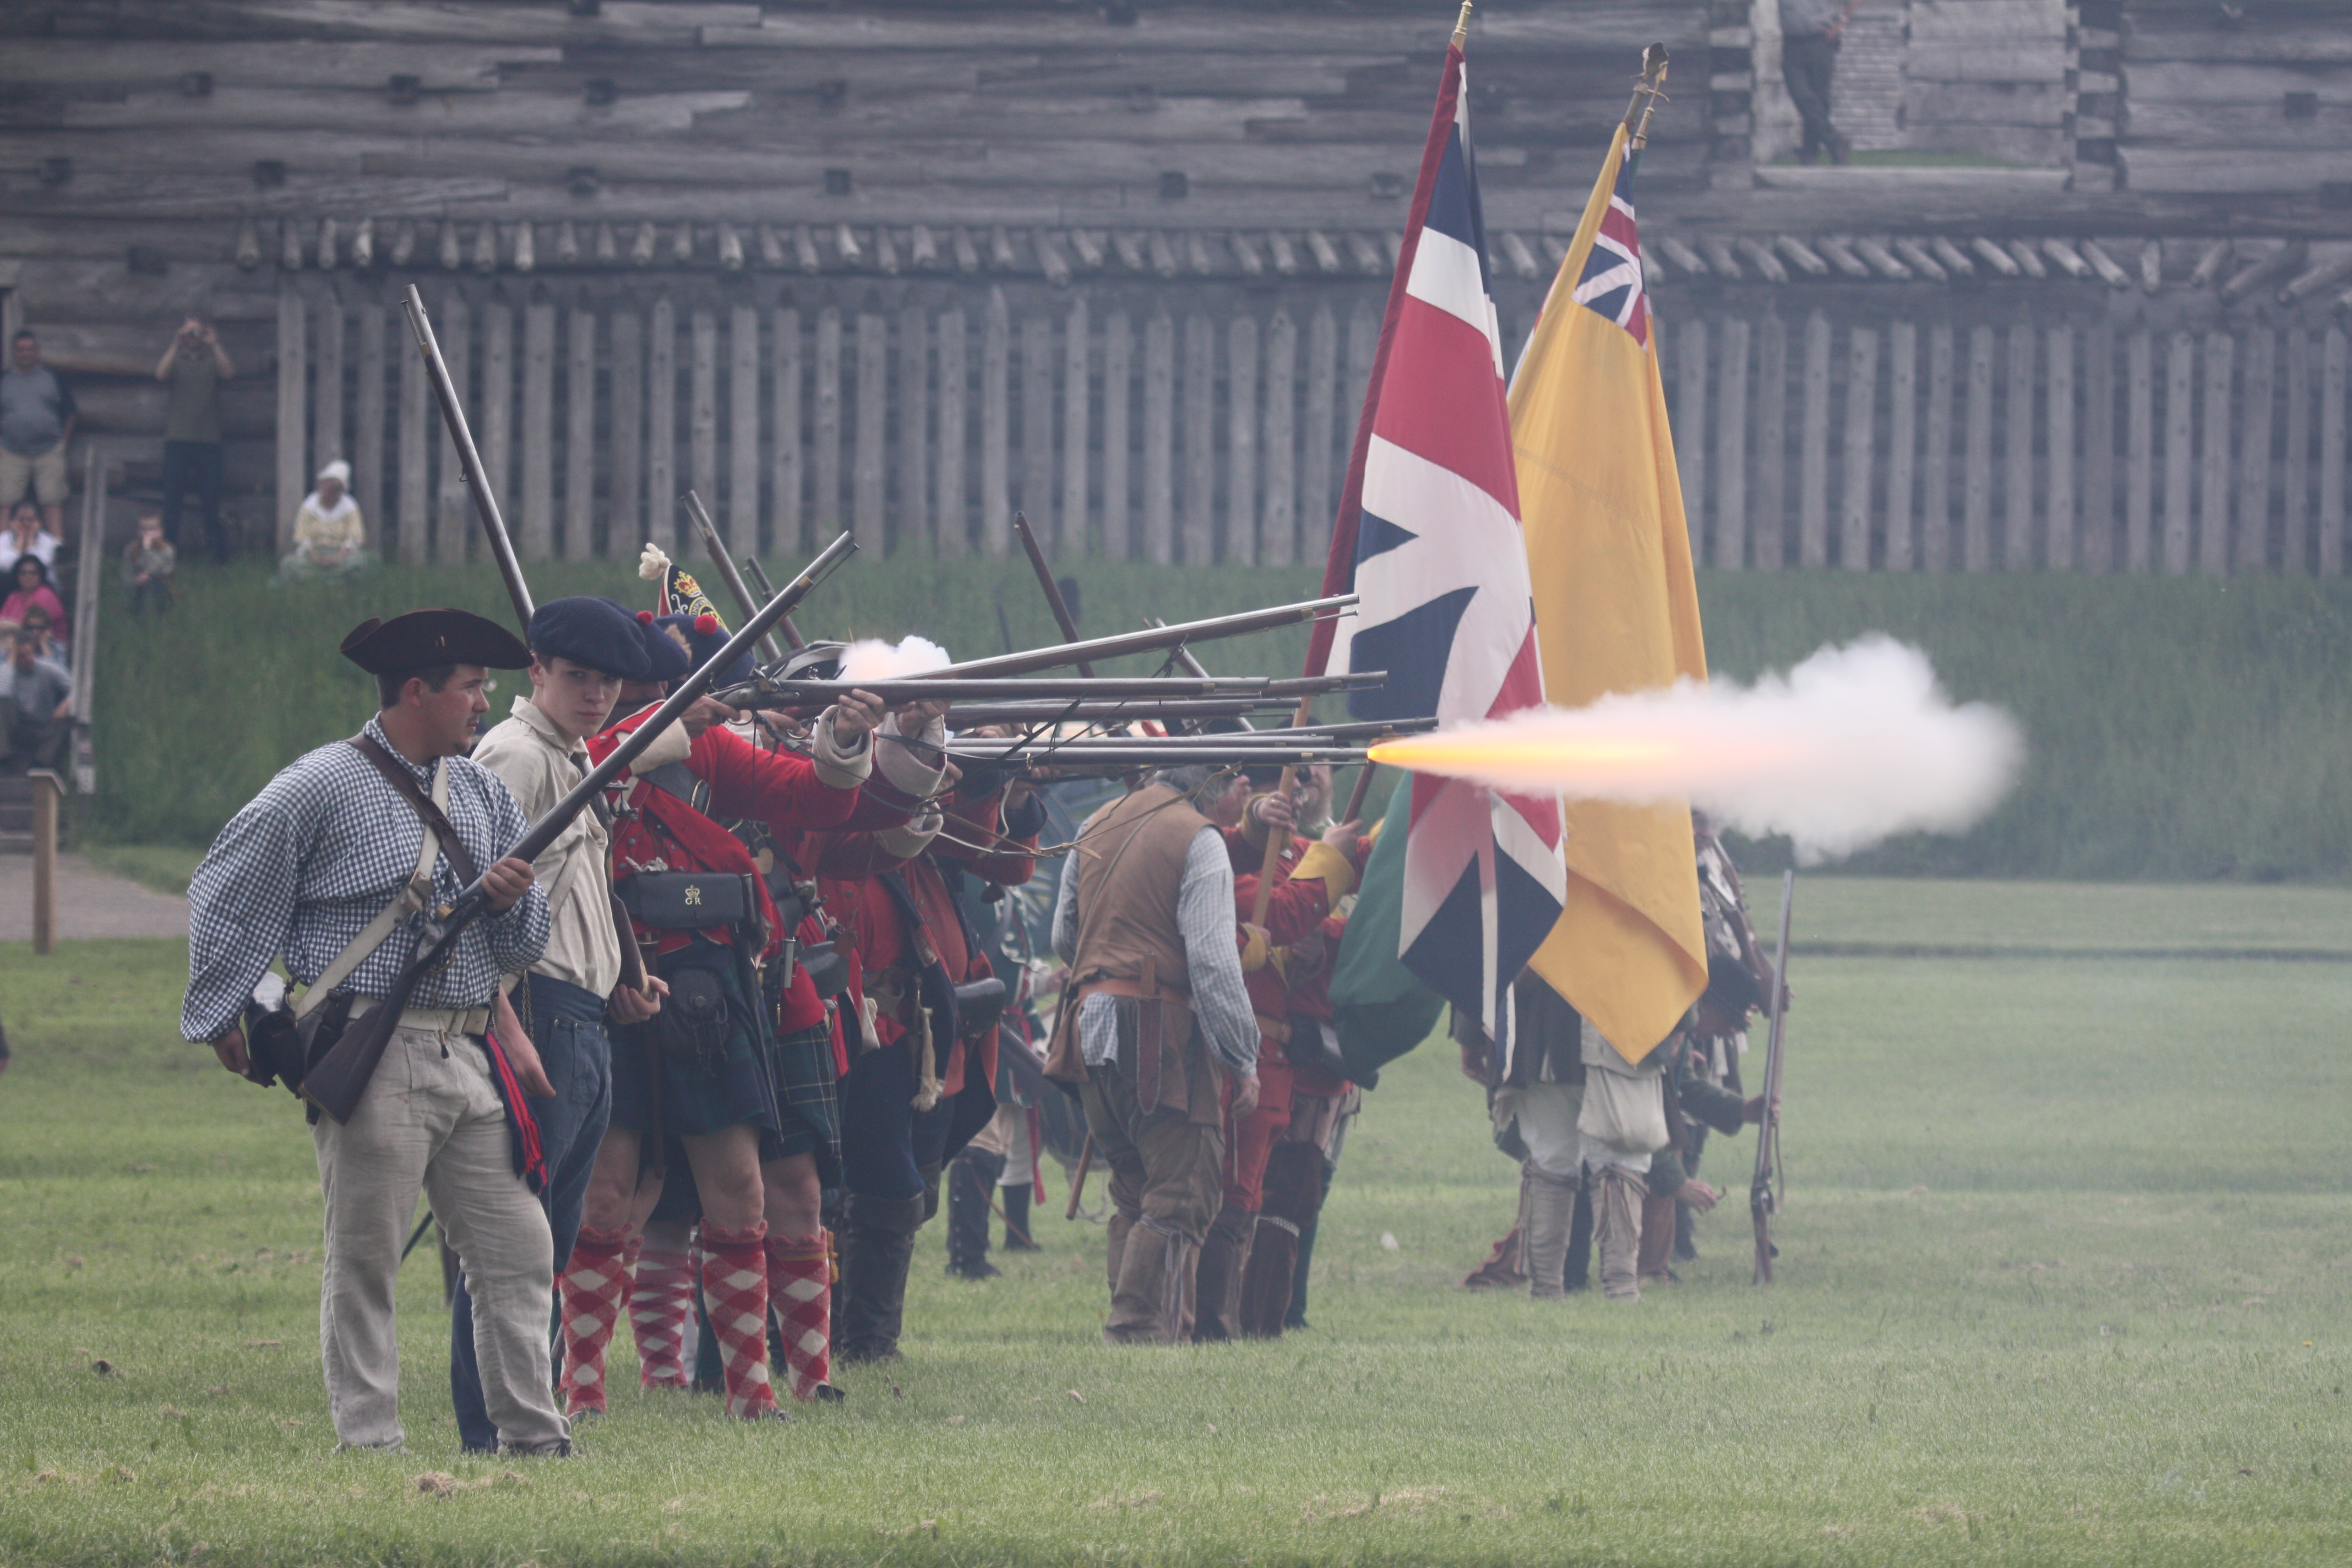 Soliders march in a line with a multi-colored flags. Smoke billows in from of them, pouring from muskets.